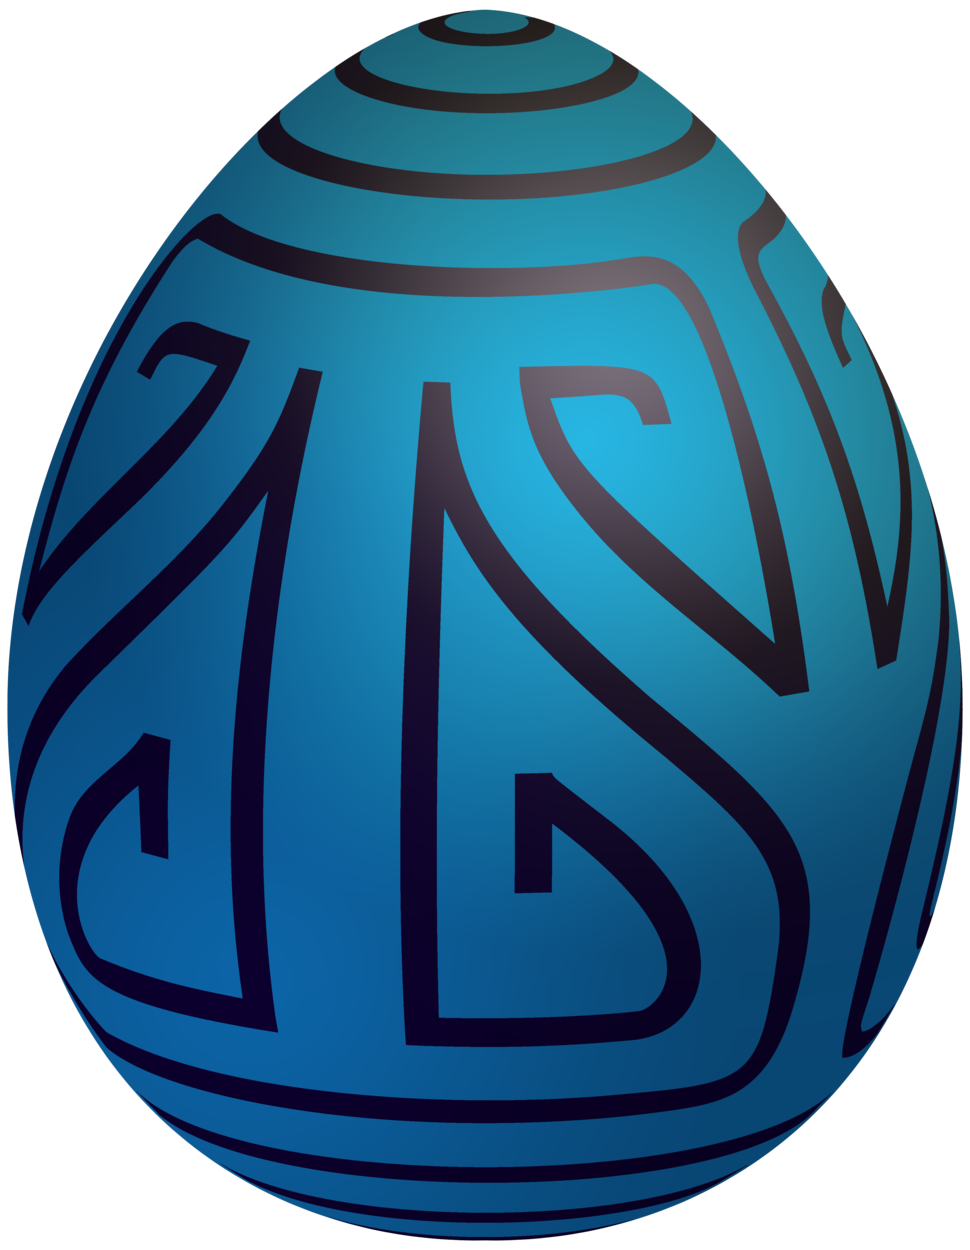 Easter Blue Decorative Egg PNG Clip Art